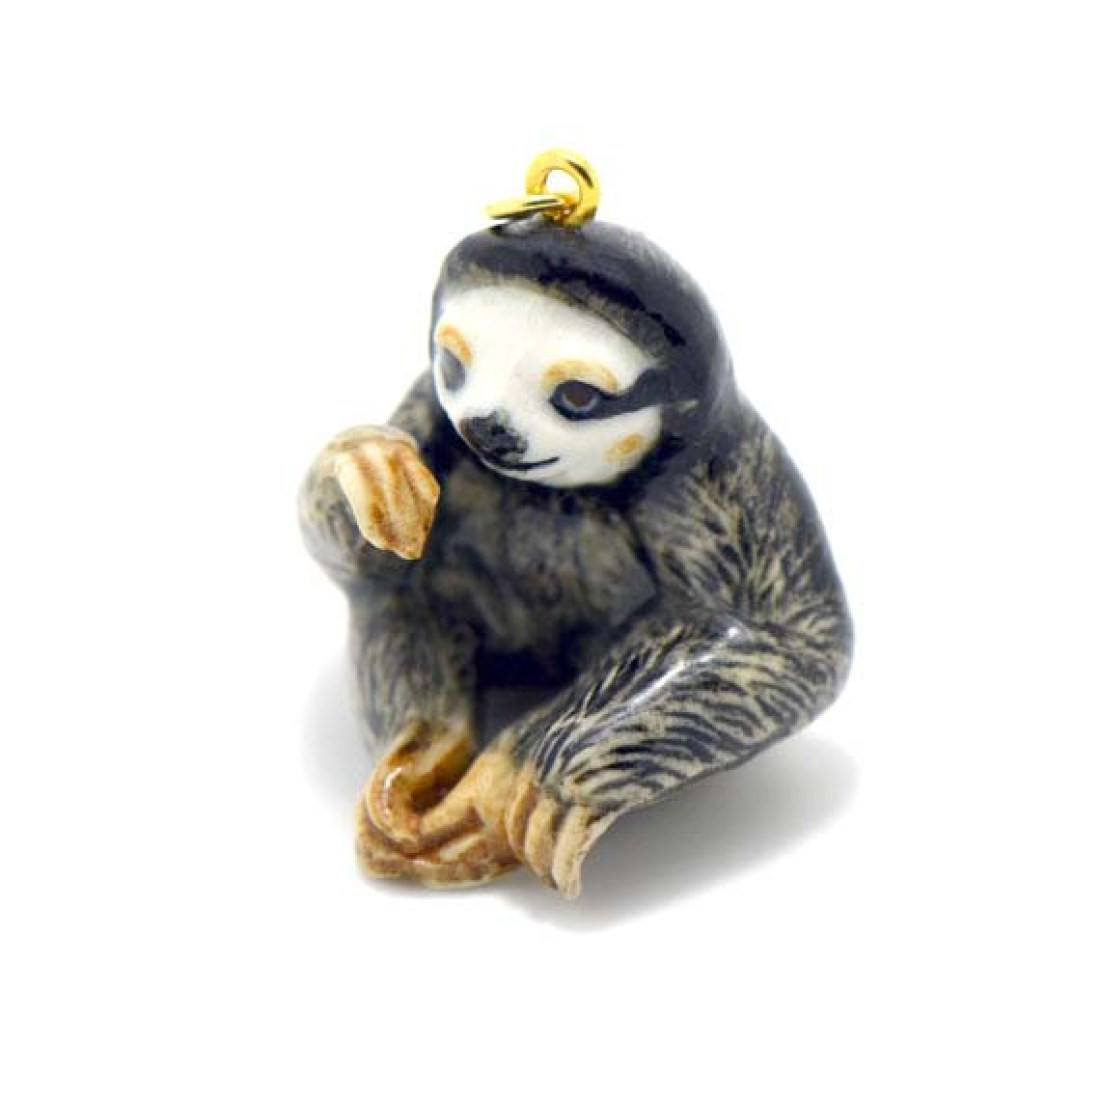 glass lampwork beads bead hole pendant bhb european sloth bracelet necklace big pin charm jewelry